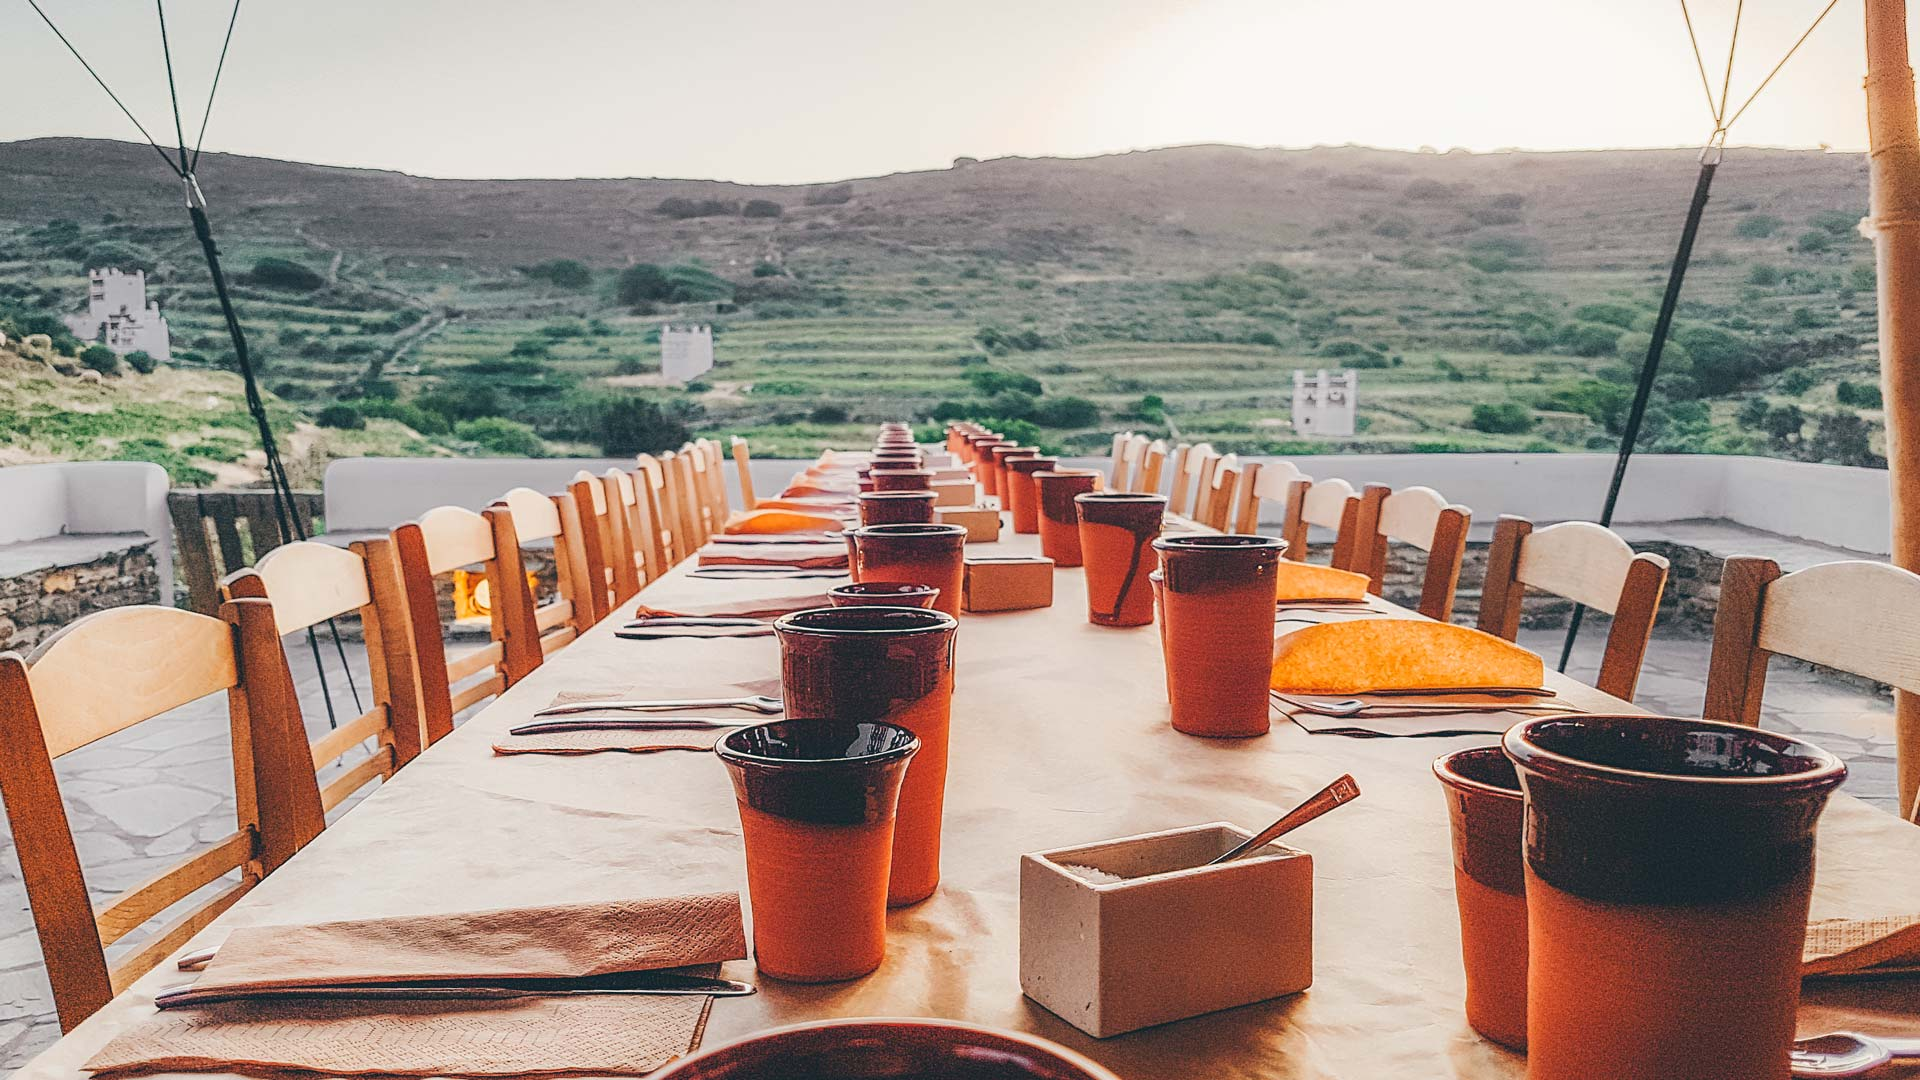 Dinner with a view of Peristerones-typical Tinian landscape and one of the most impressive works of art in the Cyclades